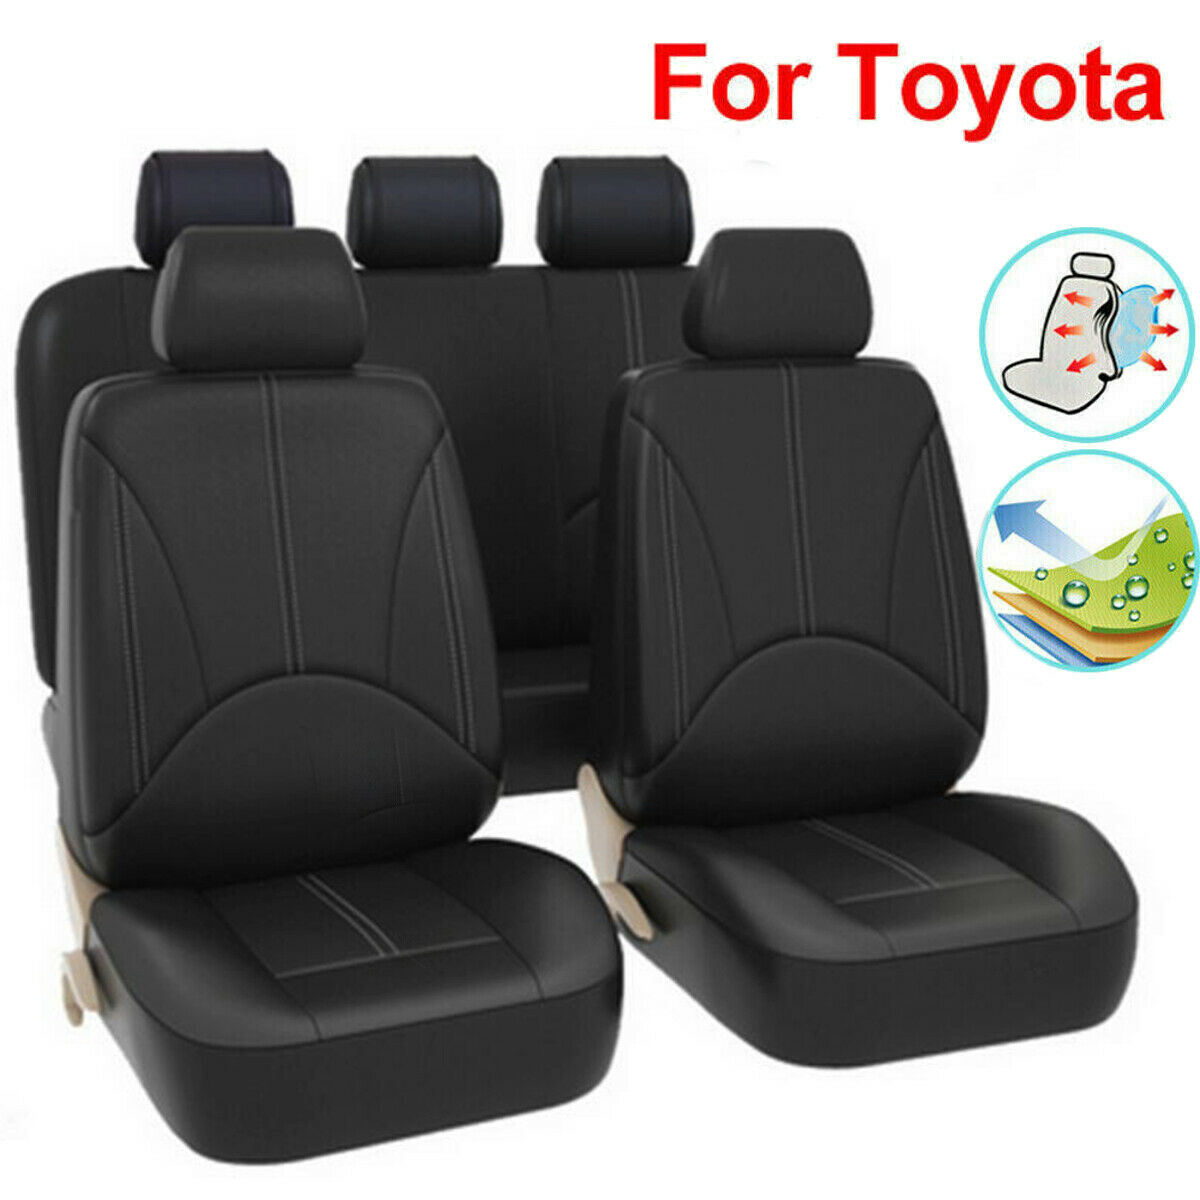 9pcs/4pcs/Set PU Leather Car Seat Cover  Pad For Toyota RAV4 4runner Venza